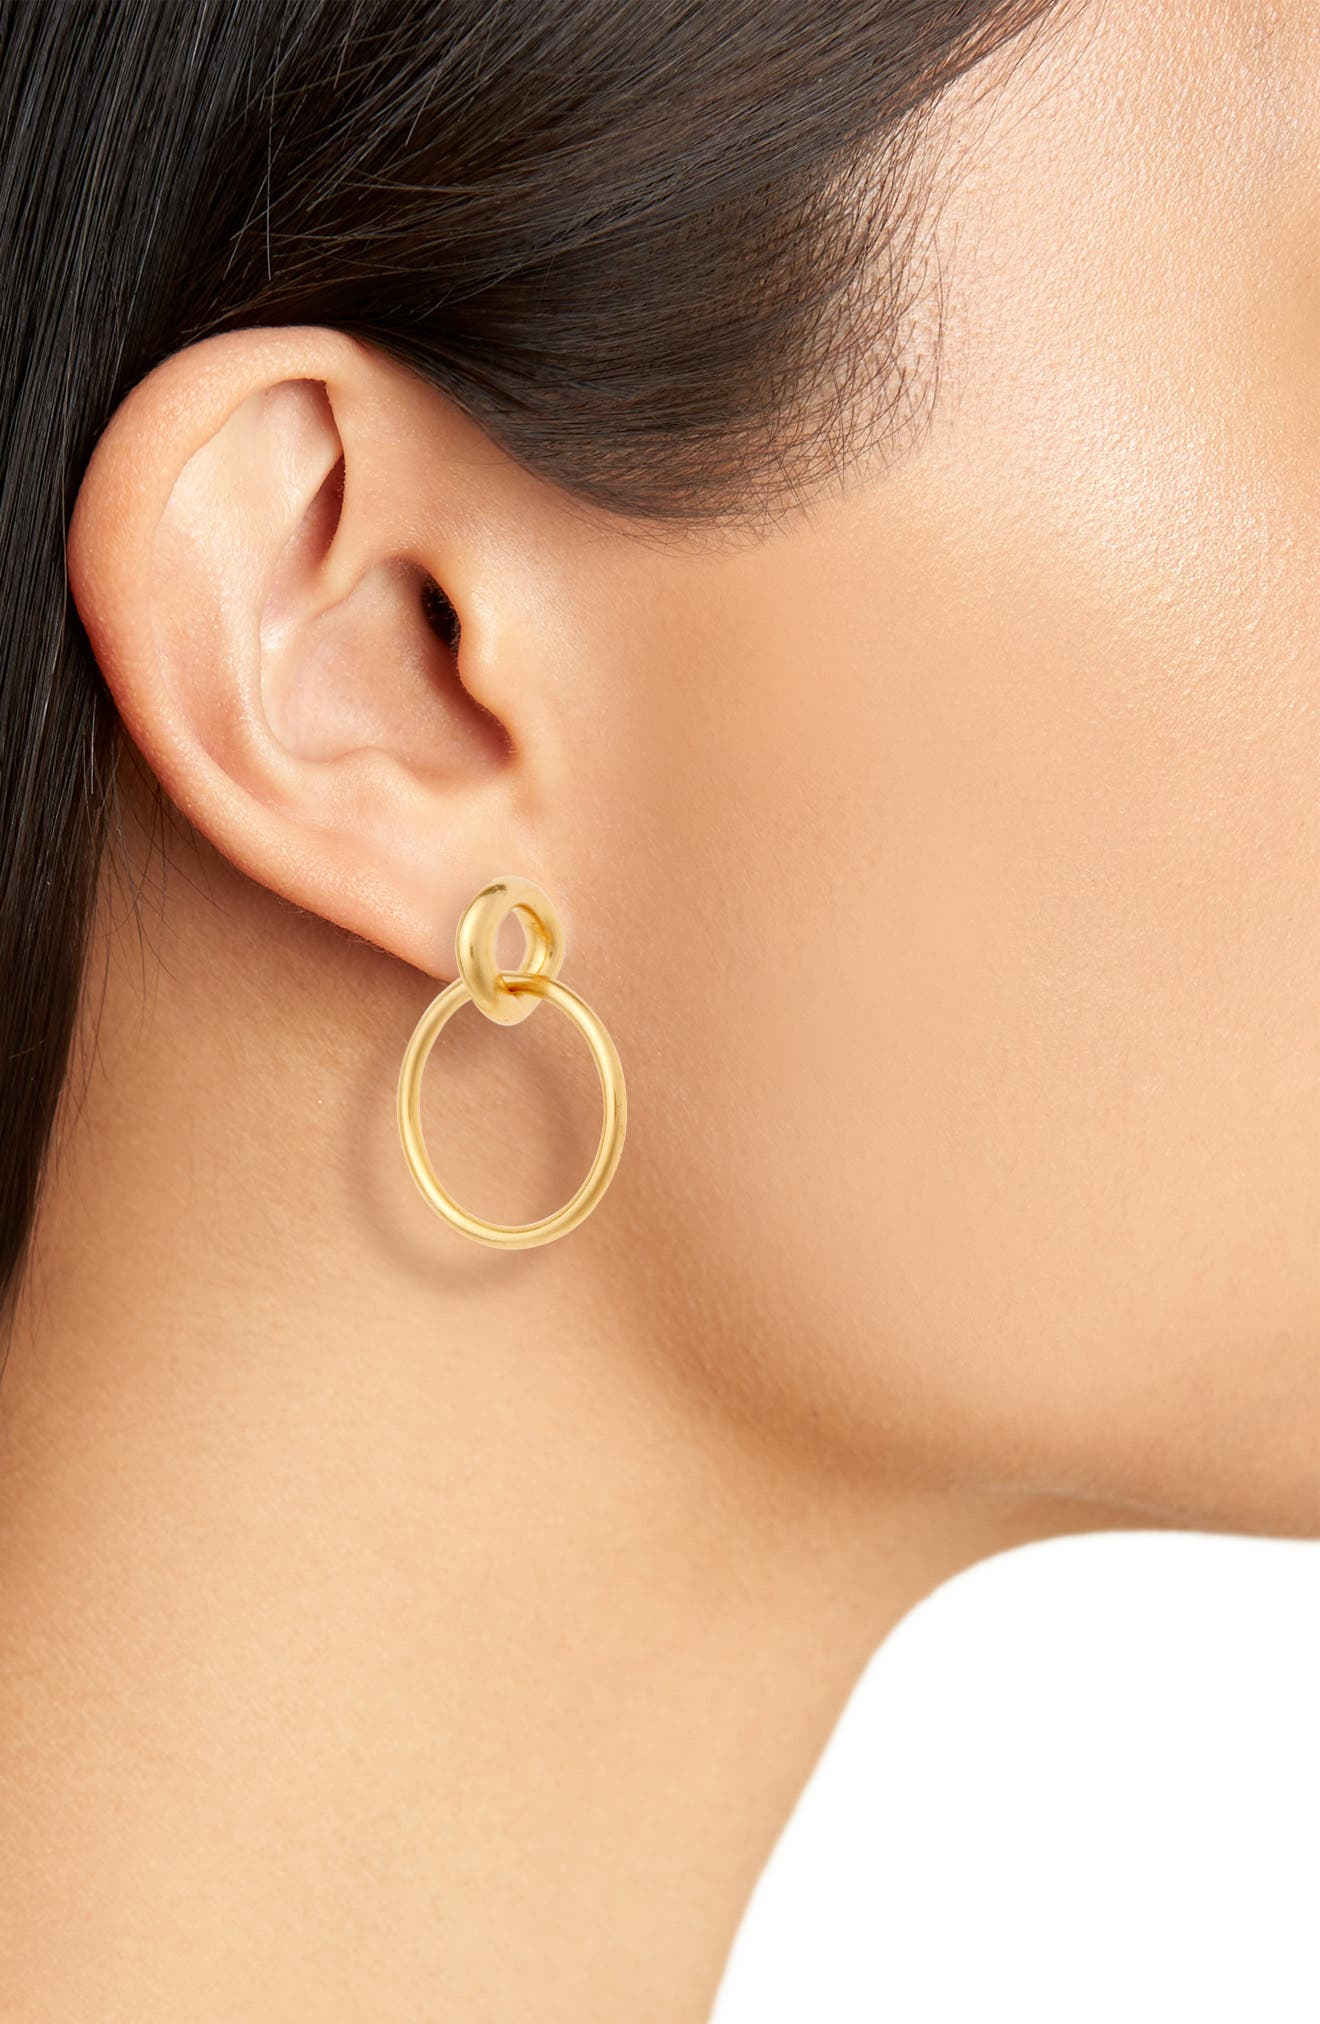 Double Hoop Earrings,                             Alternate thumbnail 2, color,                             710